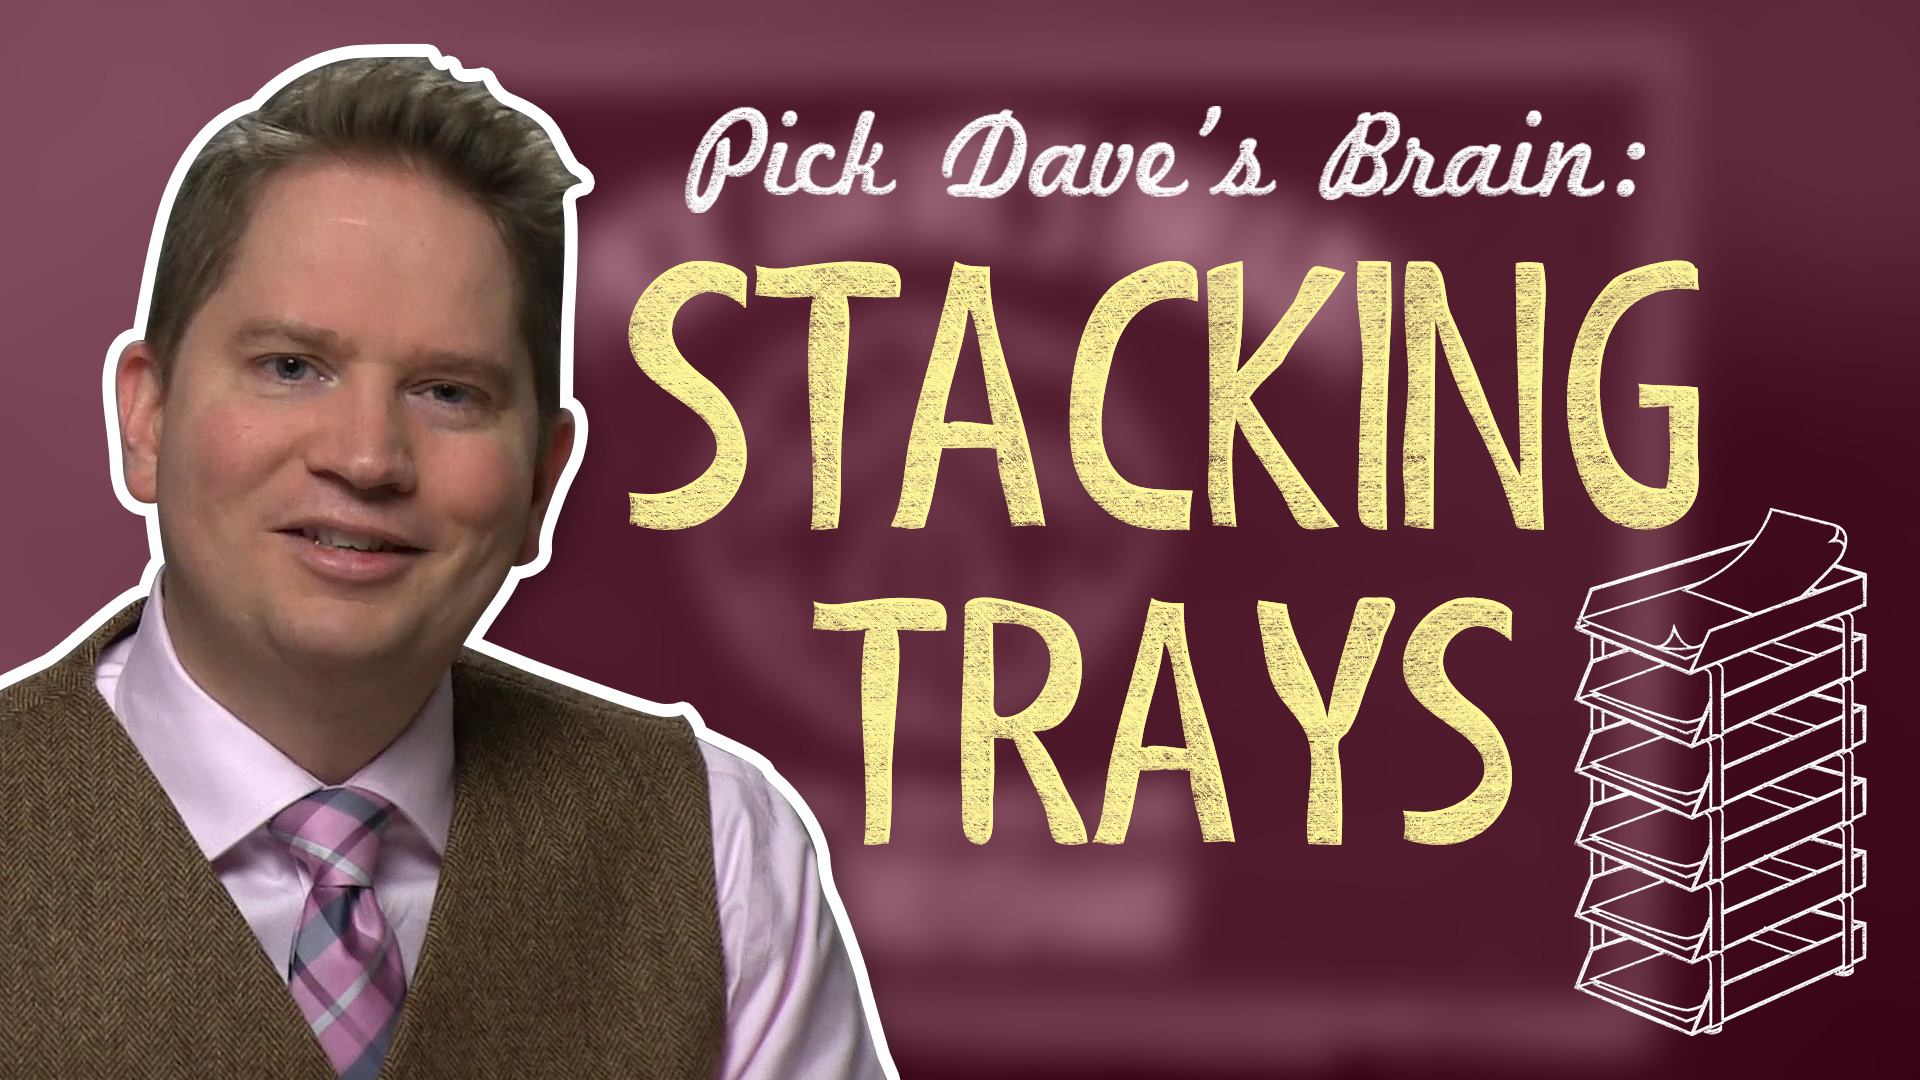 How stacking trays make for lovely homes, not gathering points – Pick Dave's Brain